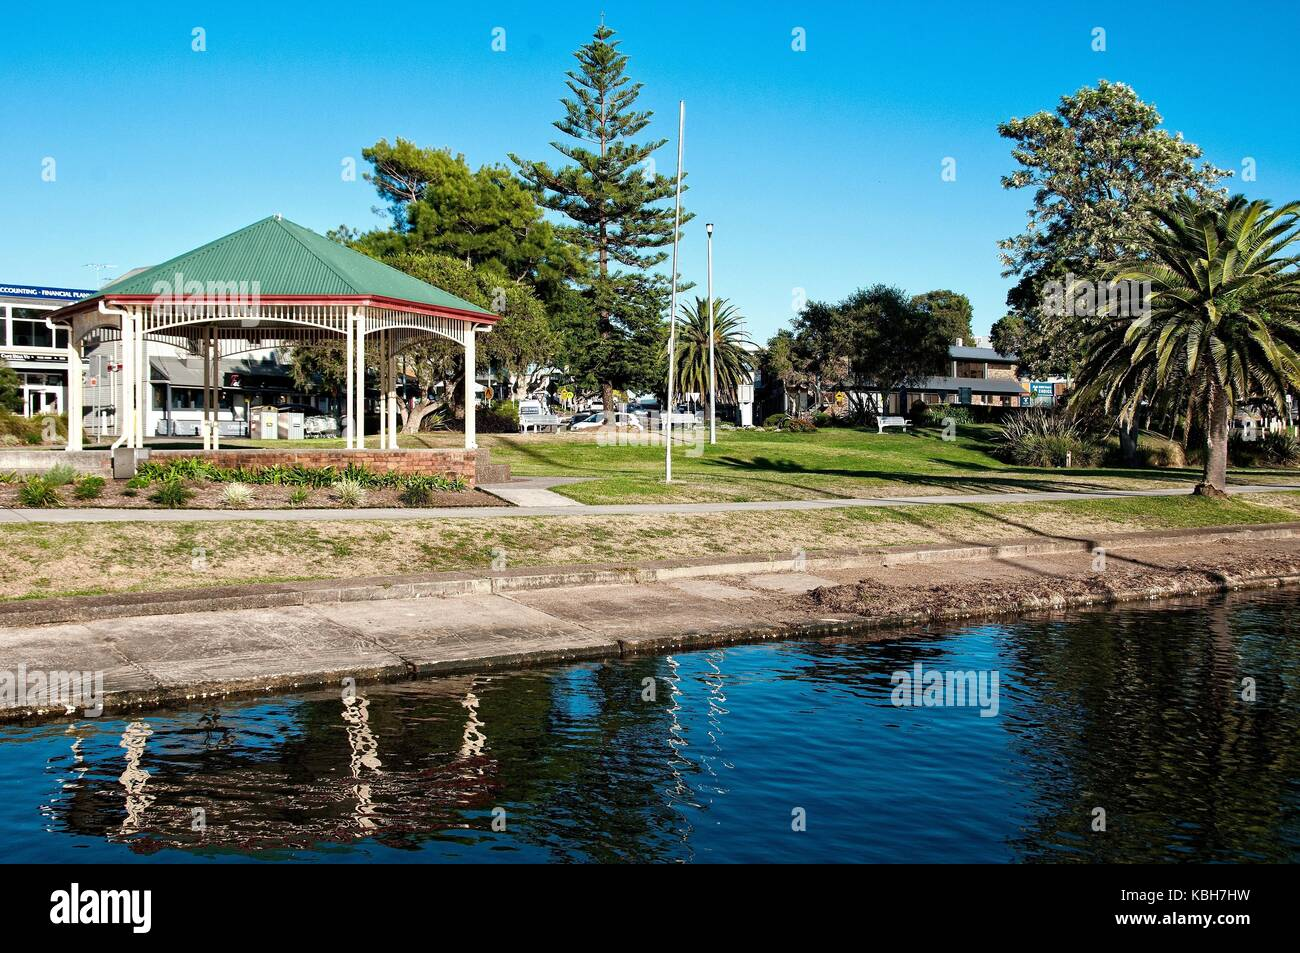 Picturesque green grassy lake waterfront park with a quaint old bandstand, trees, and water reflections in the tranquil - Stock Image